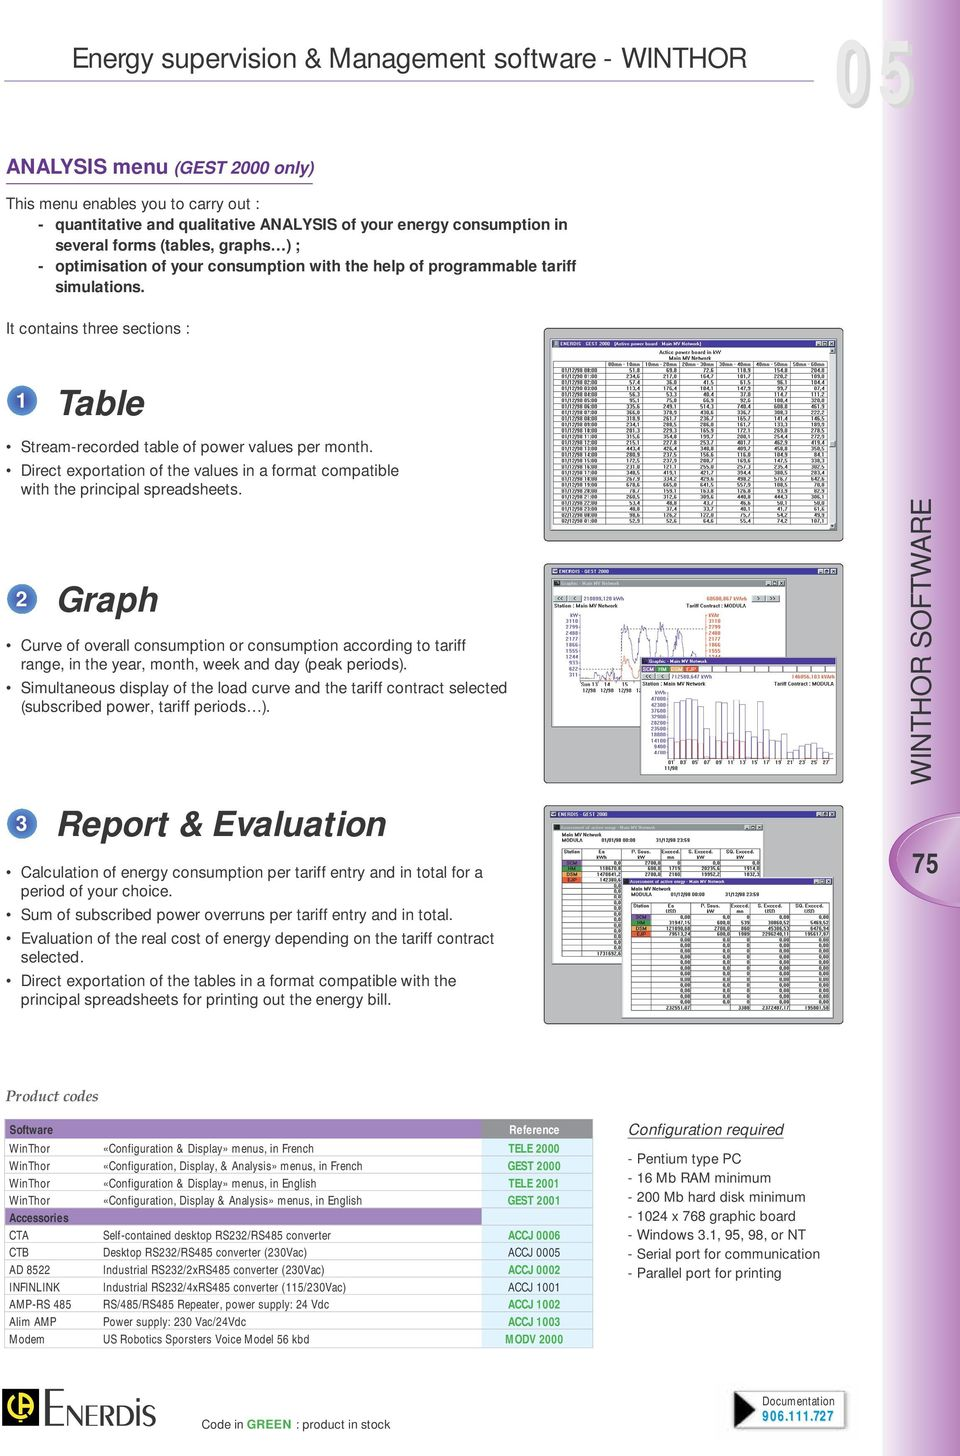 irect exportation of the values in a format compatible with the principal spreadsheets.